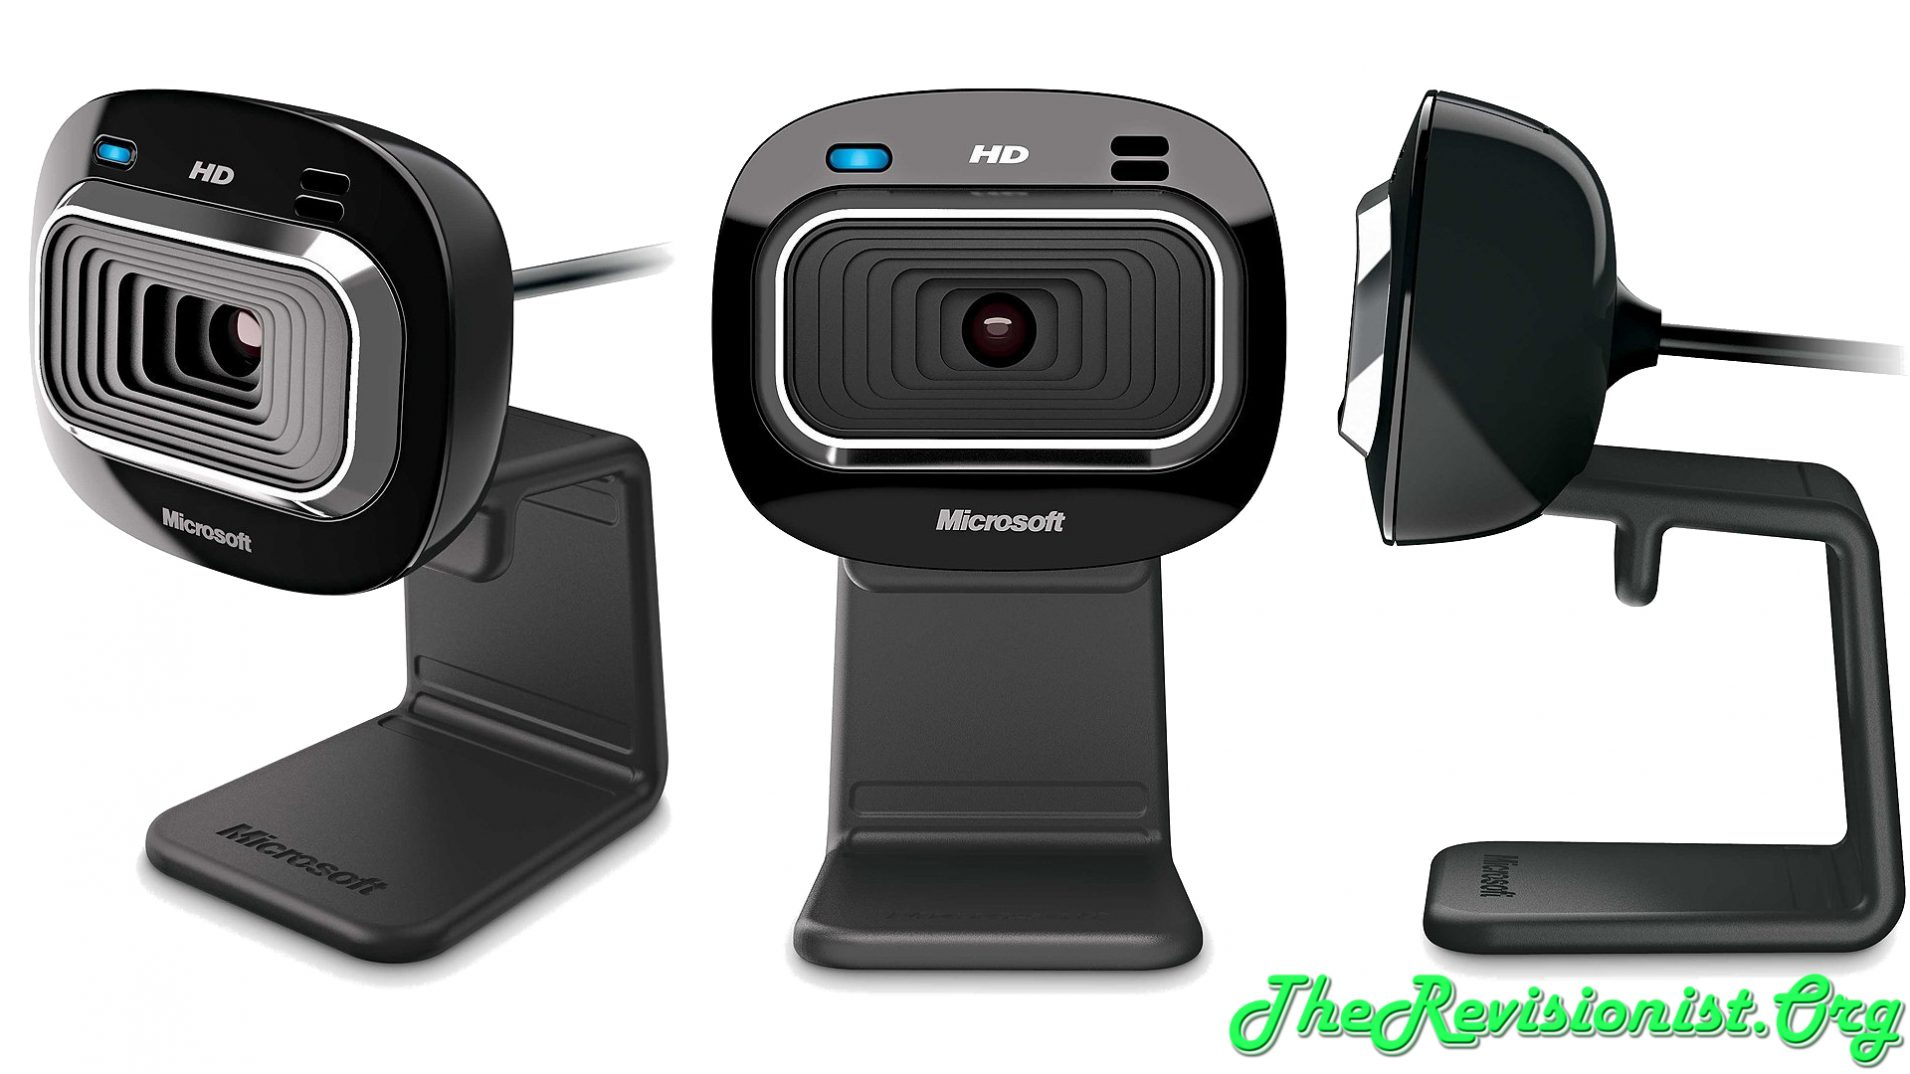 Best Budget Webcam Review: The Microsoft LifeCam HD-3000